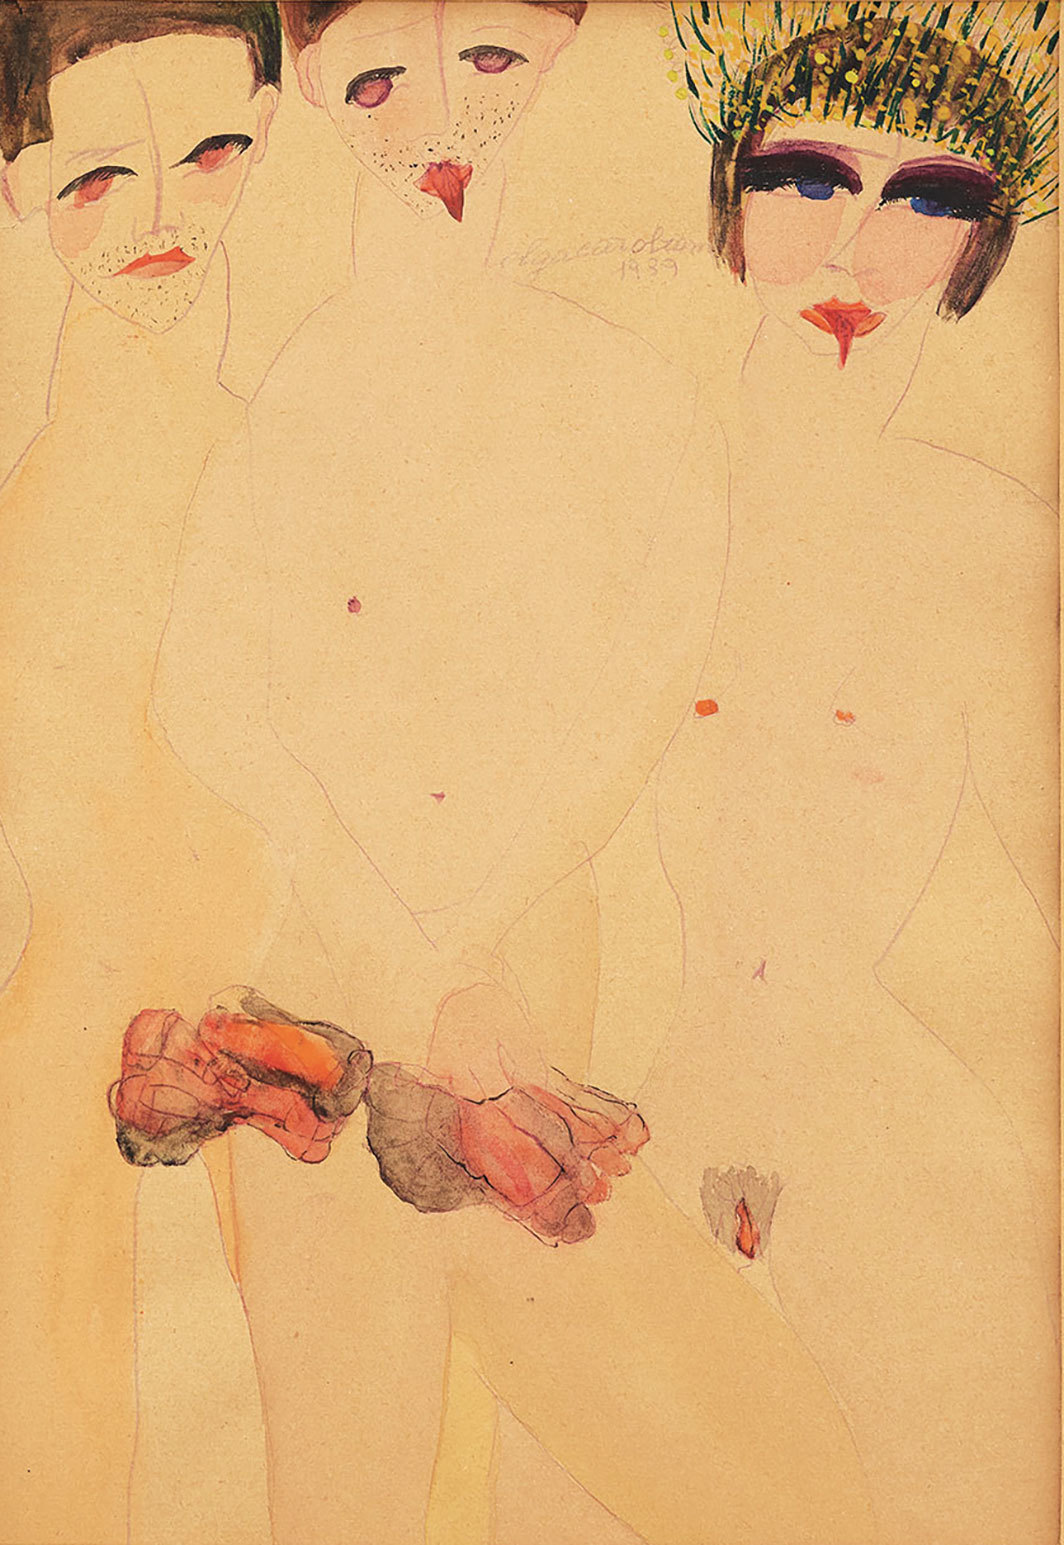 "Carol Rama, Appassionata (Marta e i marchettoni) (Passionate [Marta and the Rent Boys]), 1939, mixed media on paper, 13 × 11""."